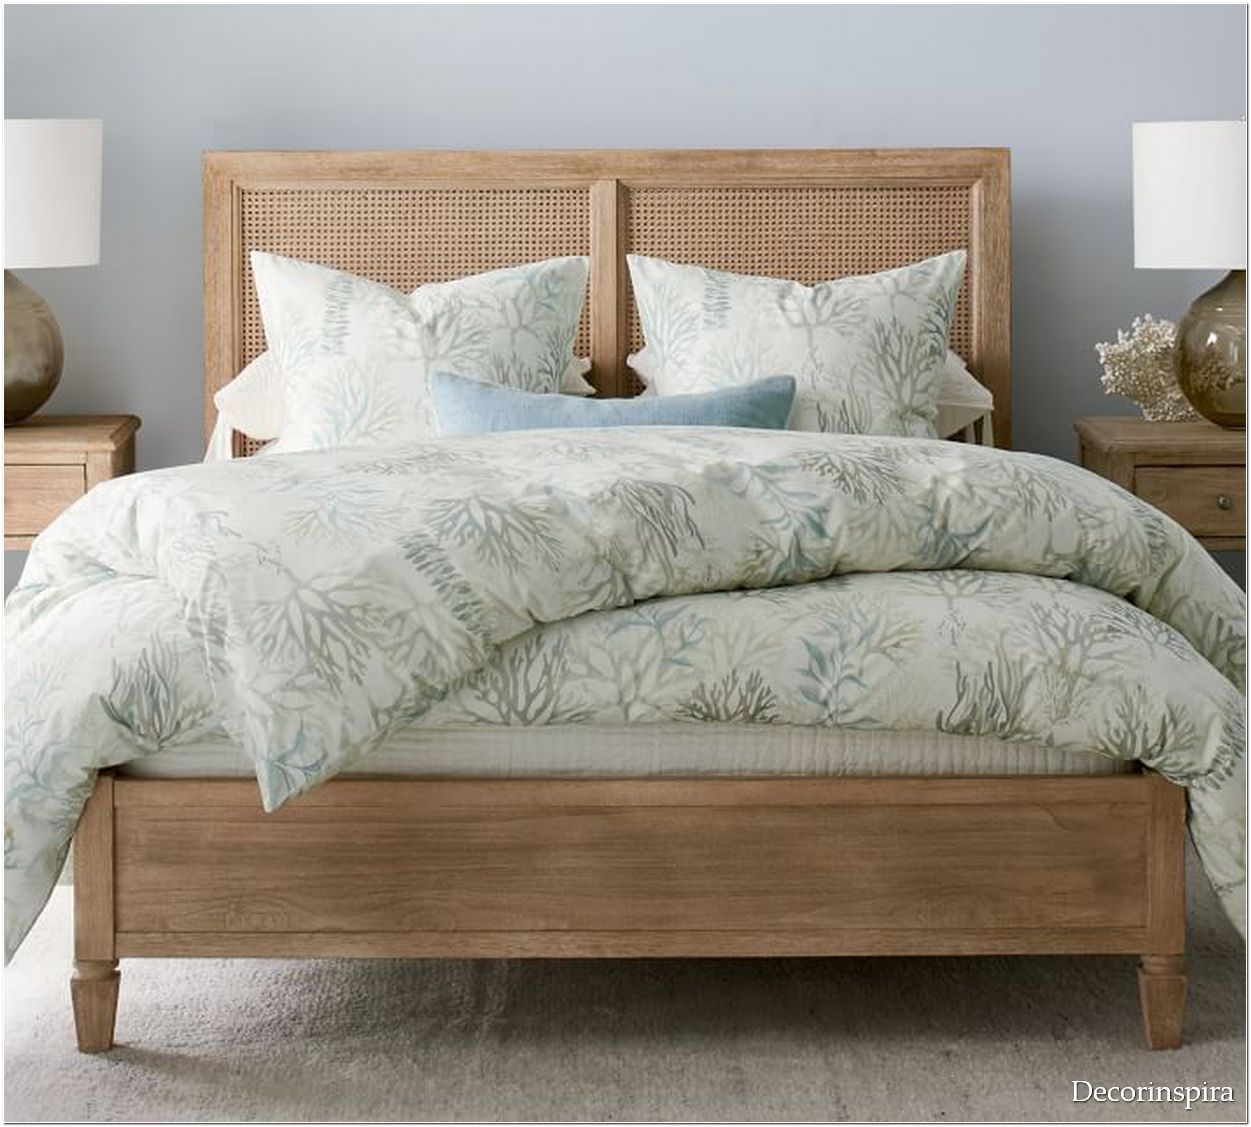 Coral Bedroom Ideas For a Great New Bedroom